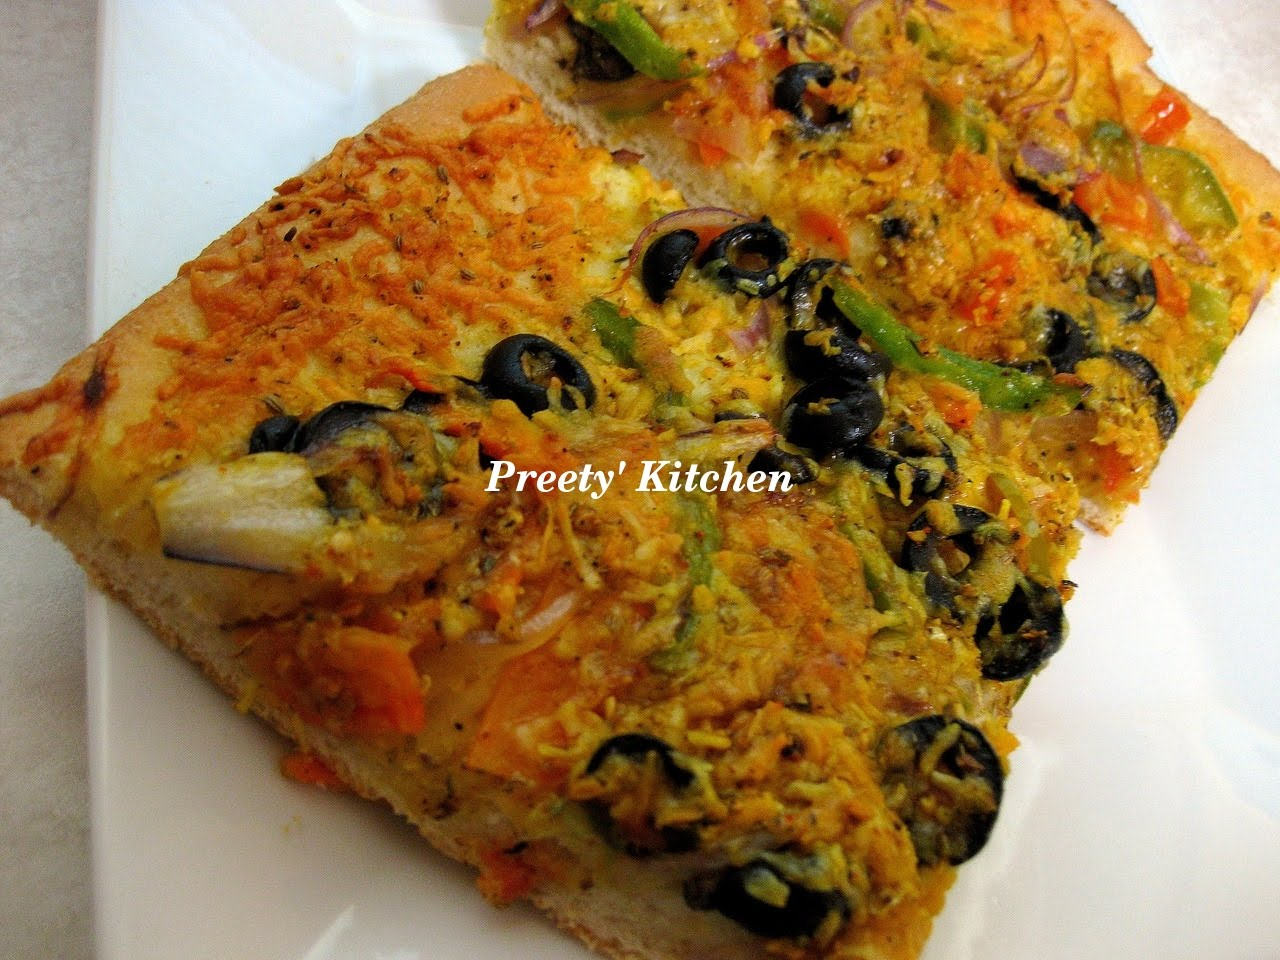 Preety's Kitchen: Semolina Pizza Dough Recipe